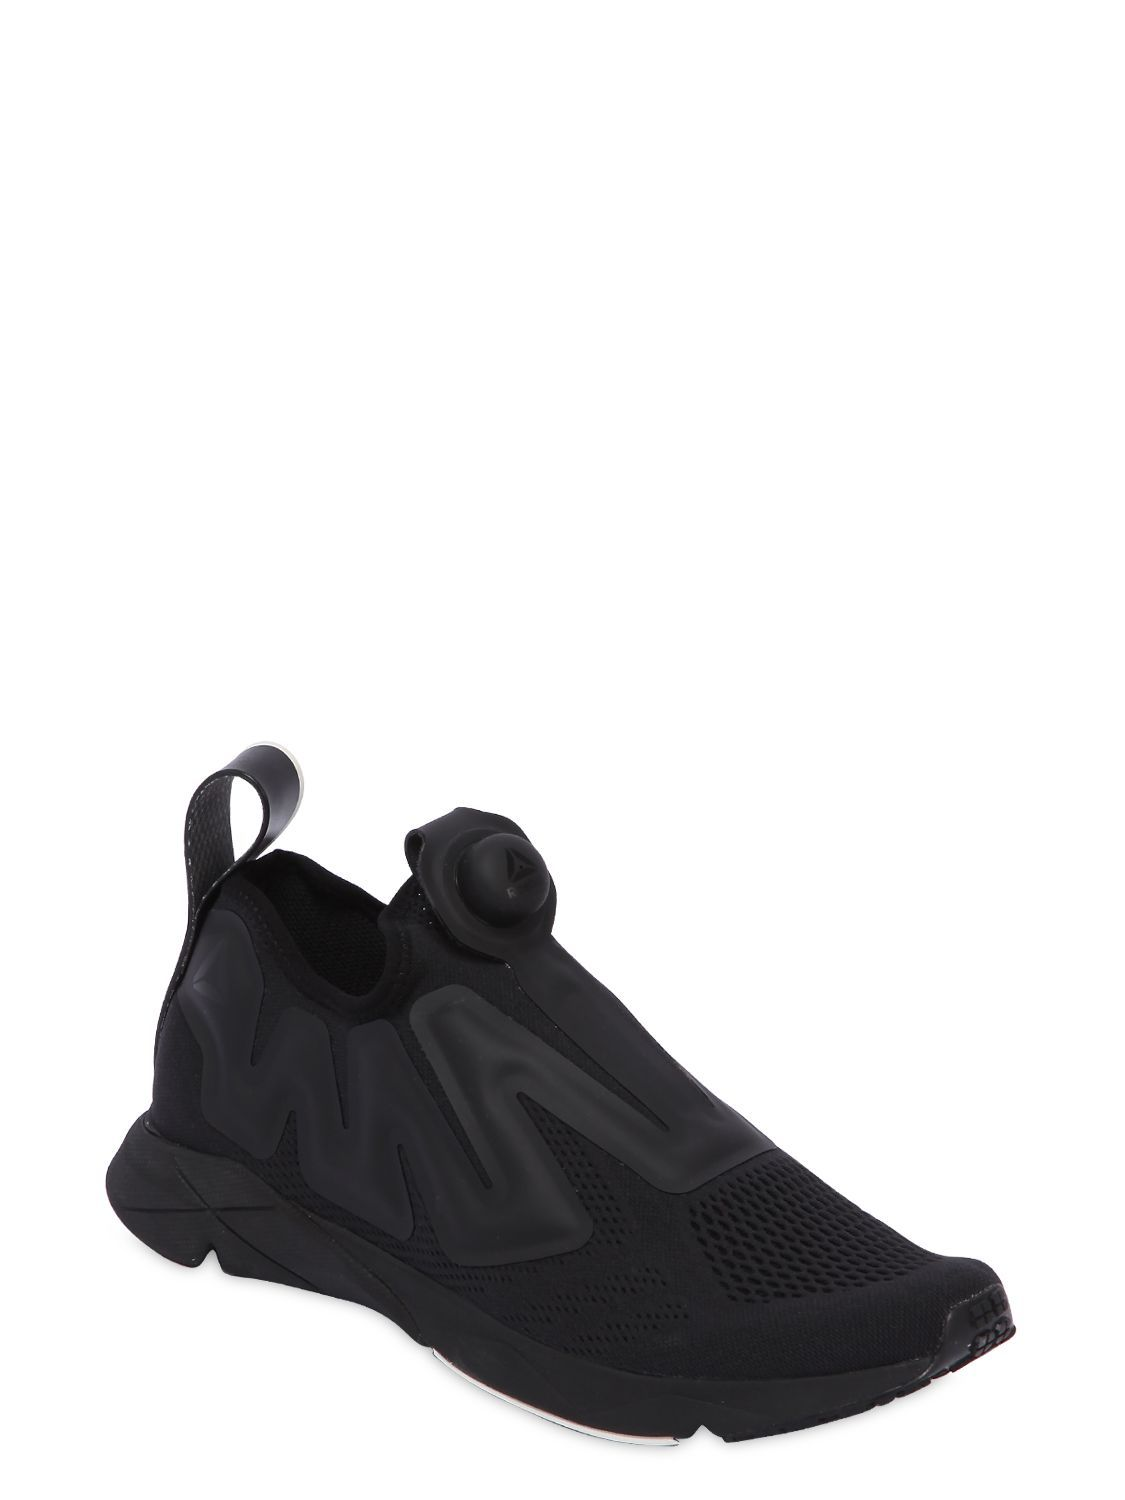 c44da747dc8b REEBOK - REEBOK PUMP SUPREME MESH SNEAKERS - SNEAKERS - BLACK -  LUISAVIAROMA - Created in collaboration with Reebok®. Instapump technology.